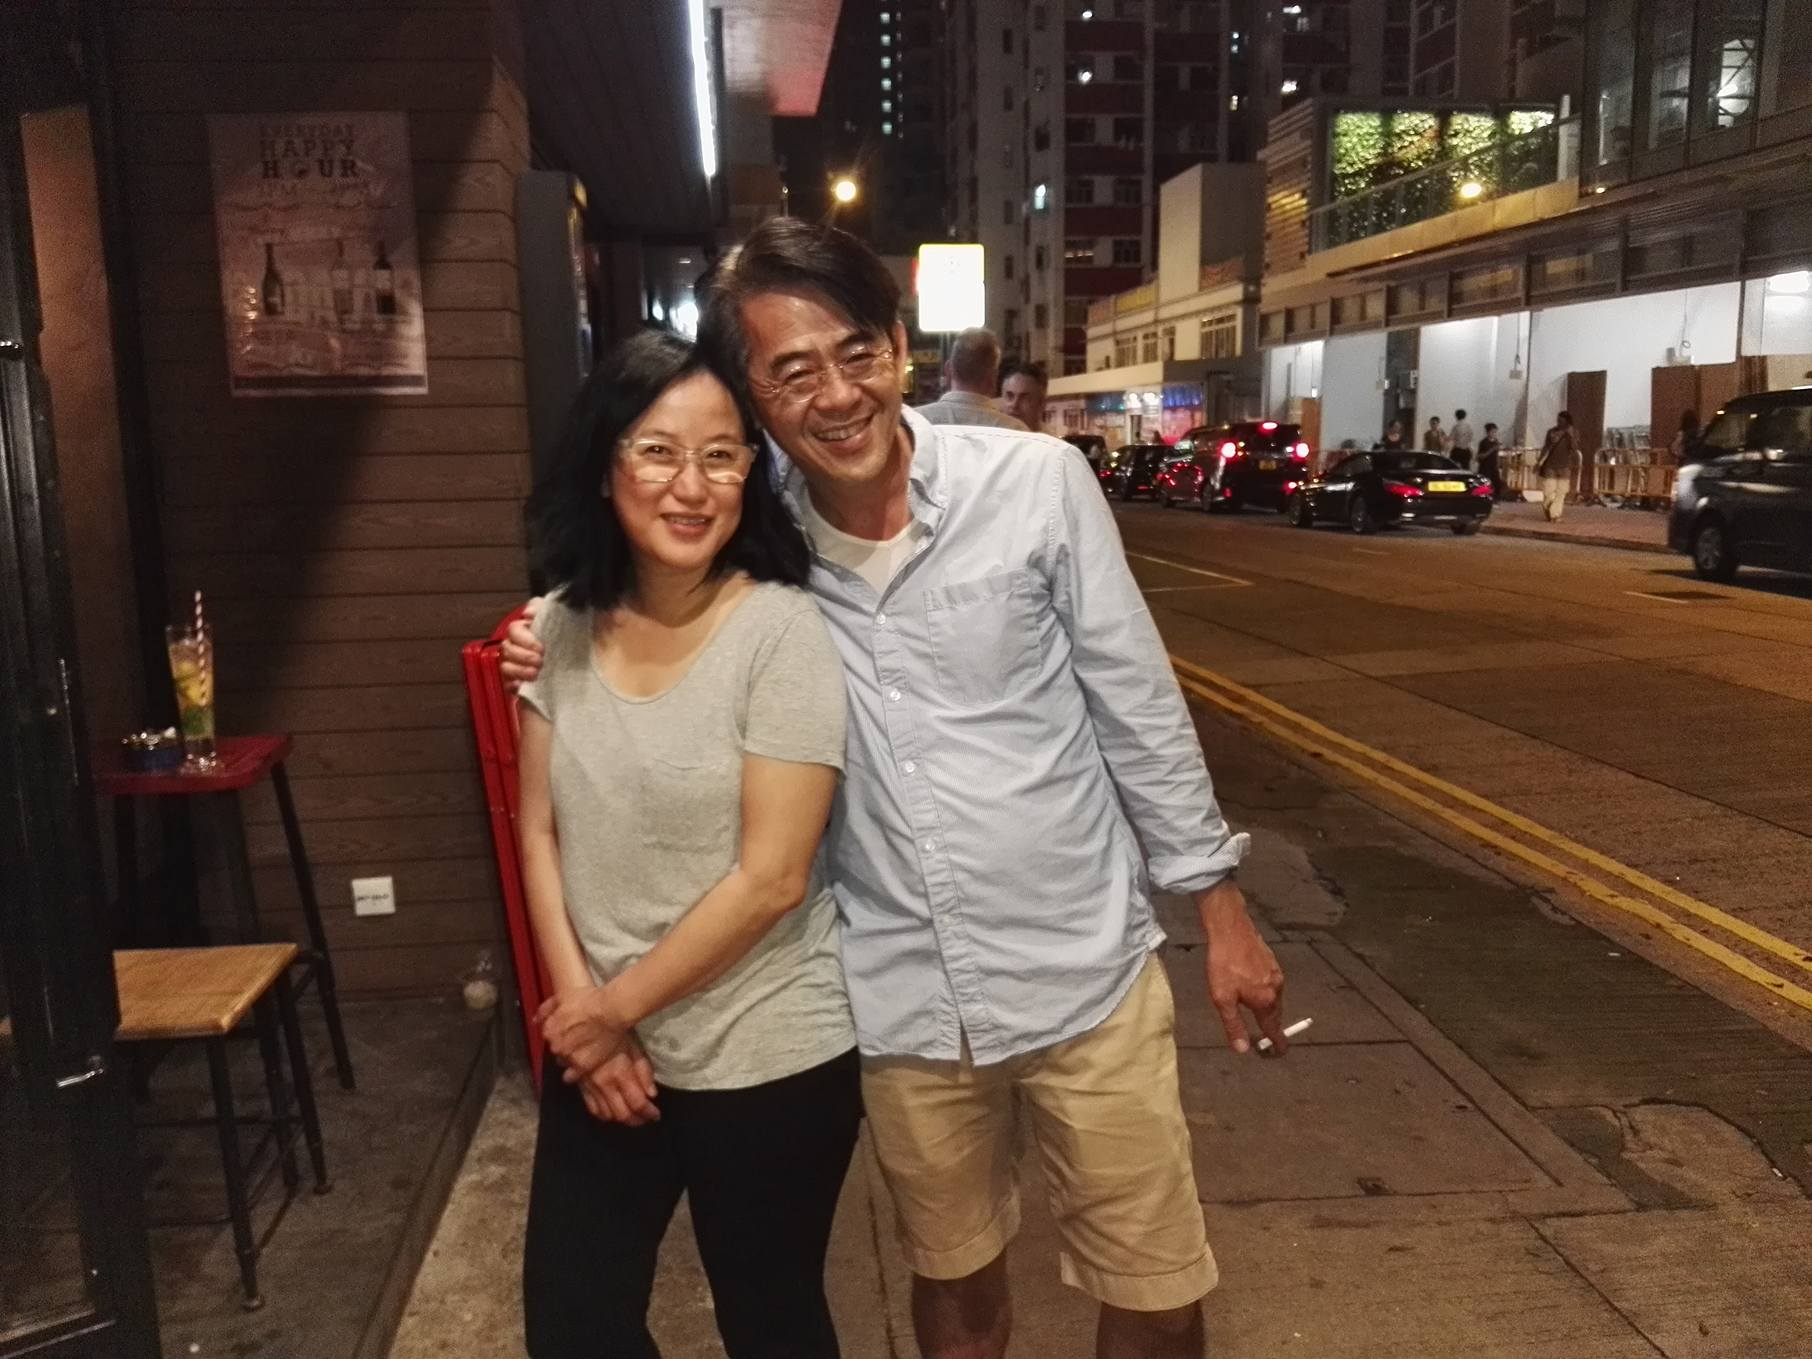 International New York Times' Anh-Thu Pan and Viet Kitchen's Peter Cuong Franklin